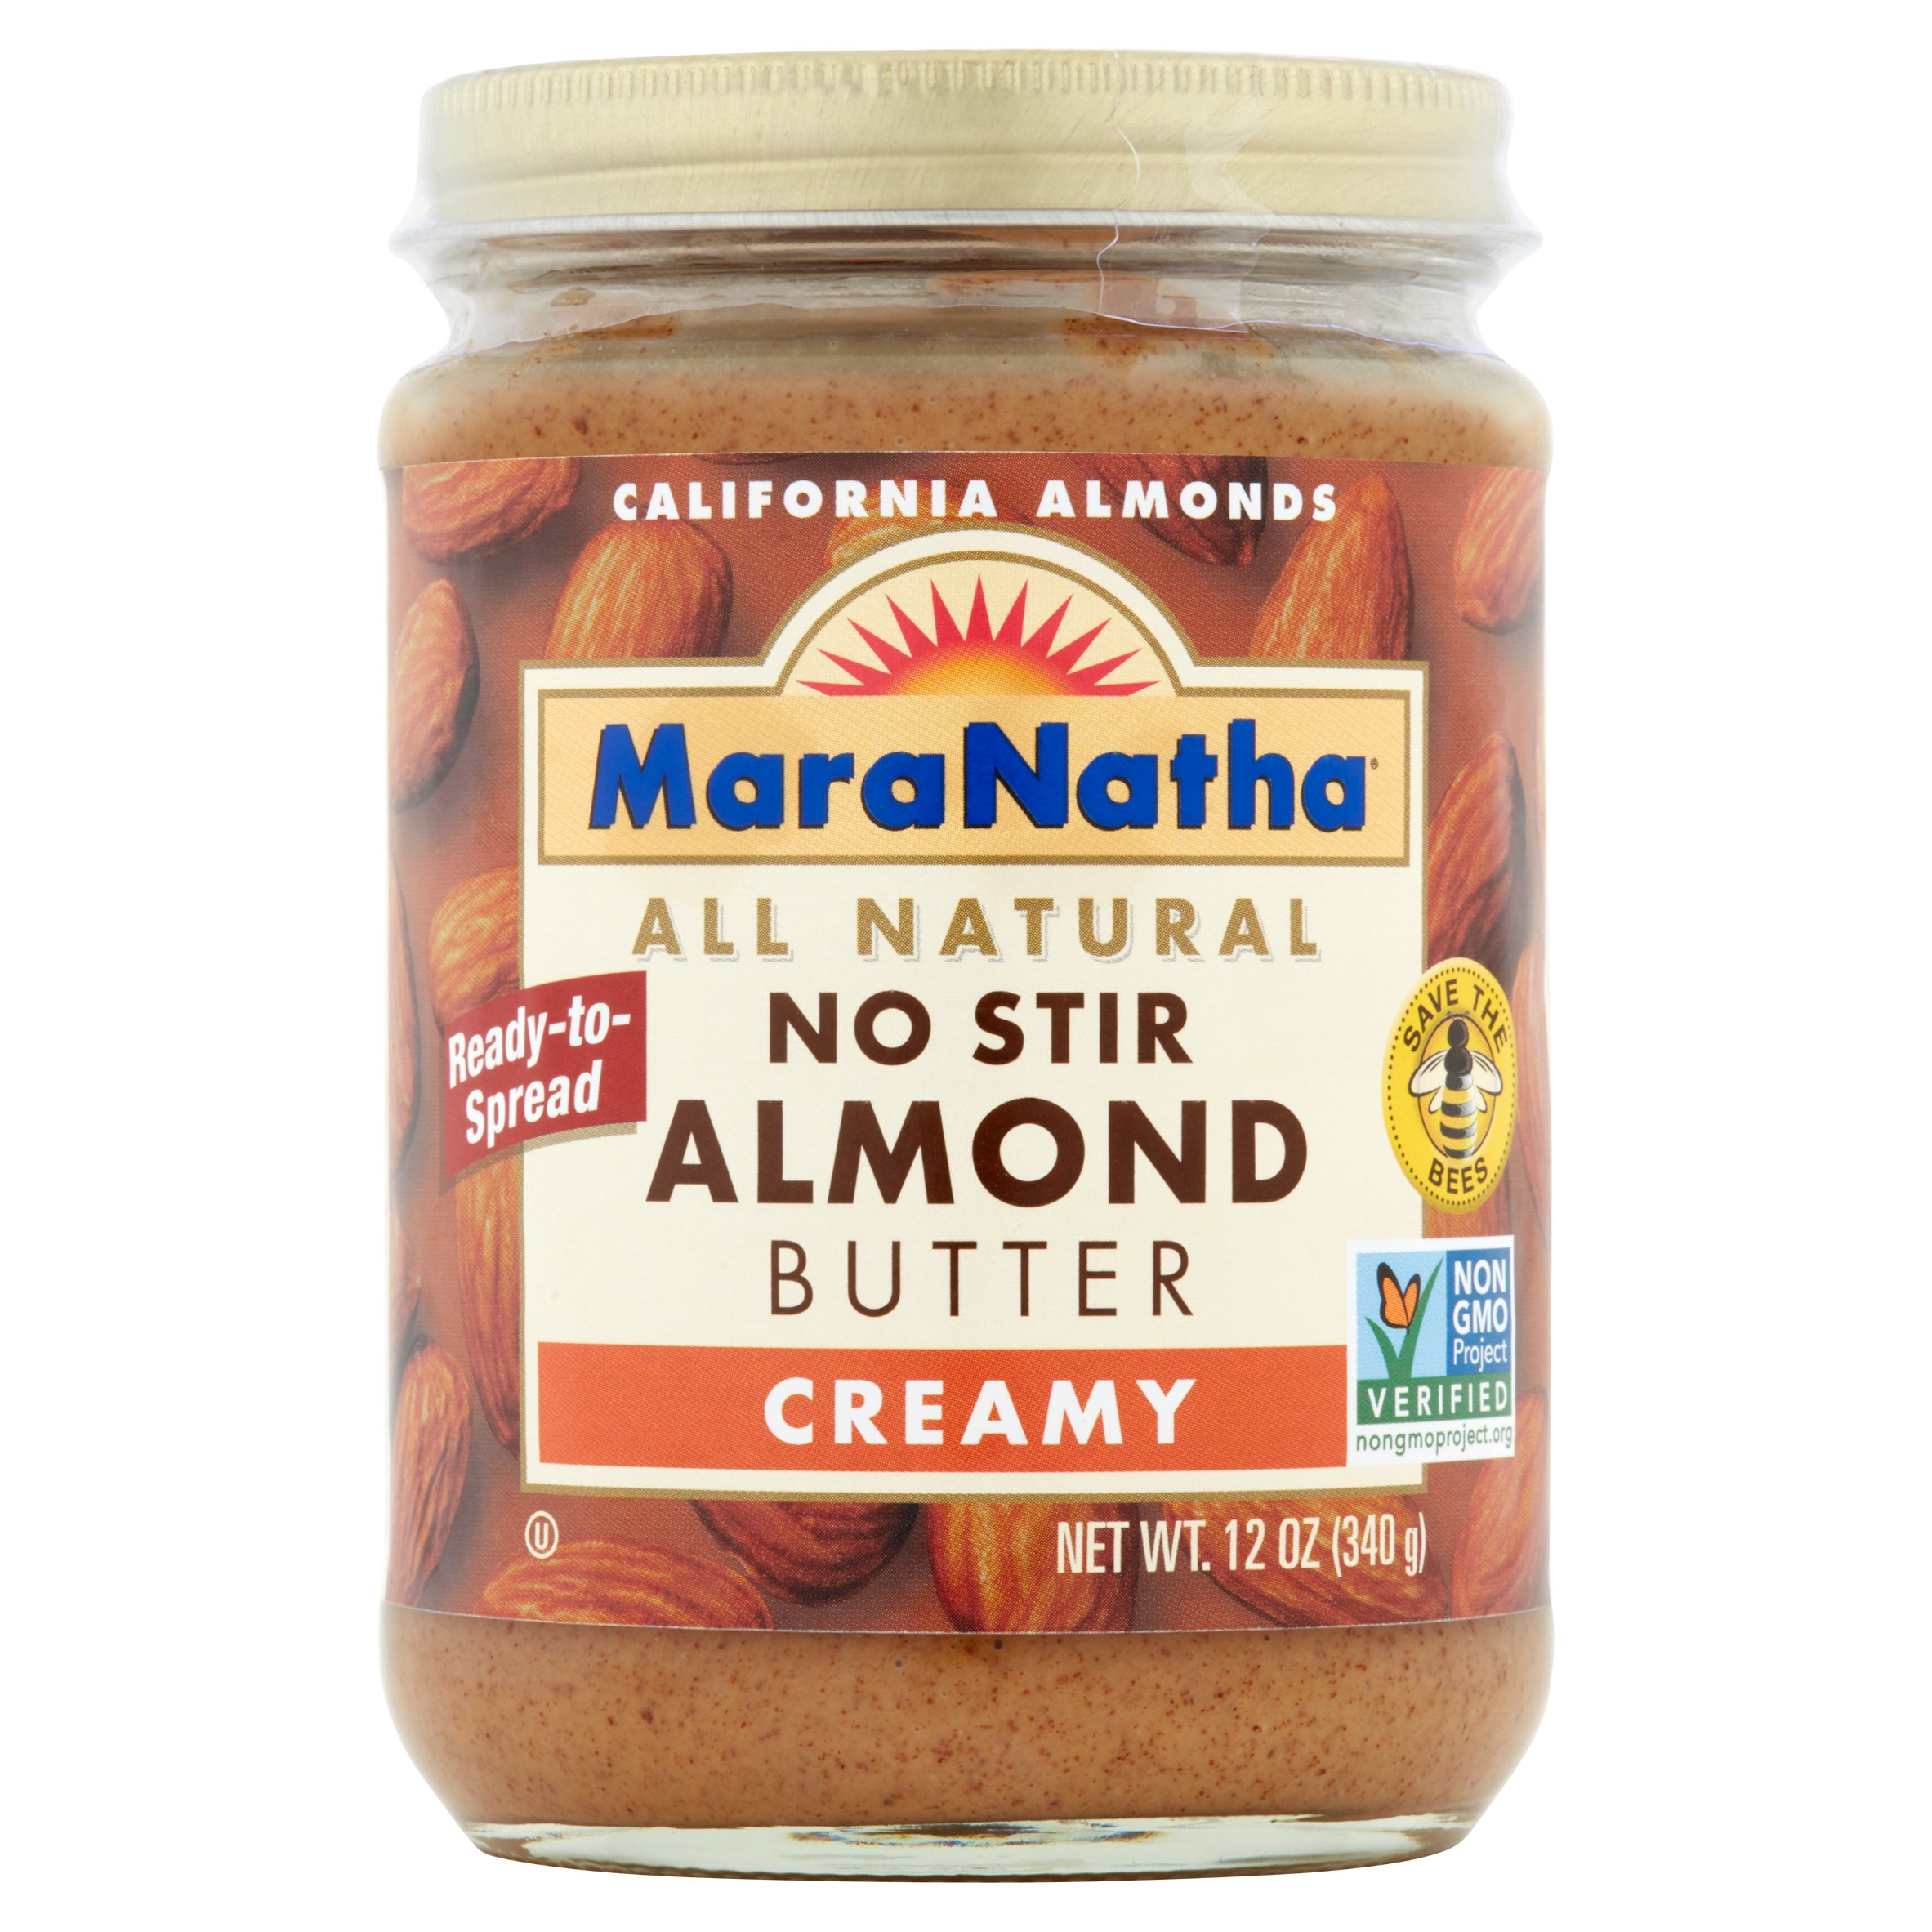 MaraNatha Butter All Natural No Stir Almond Creamy, 12 oz